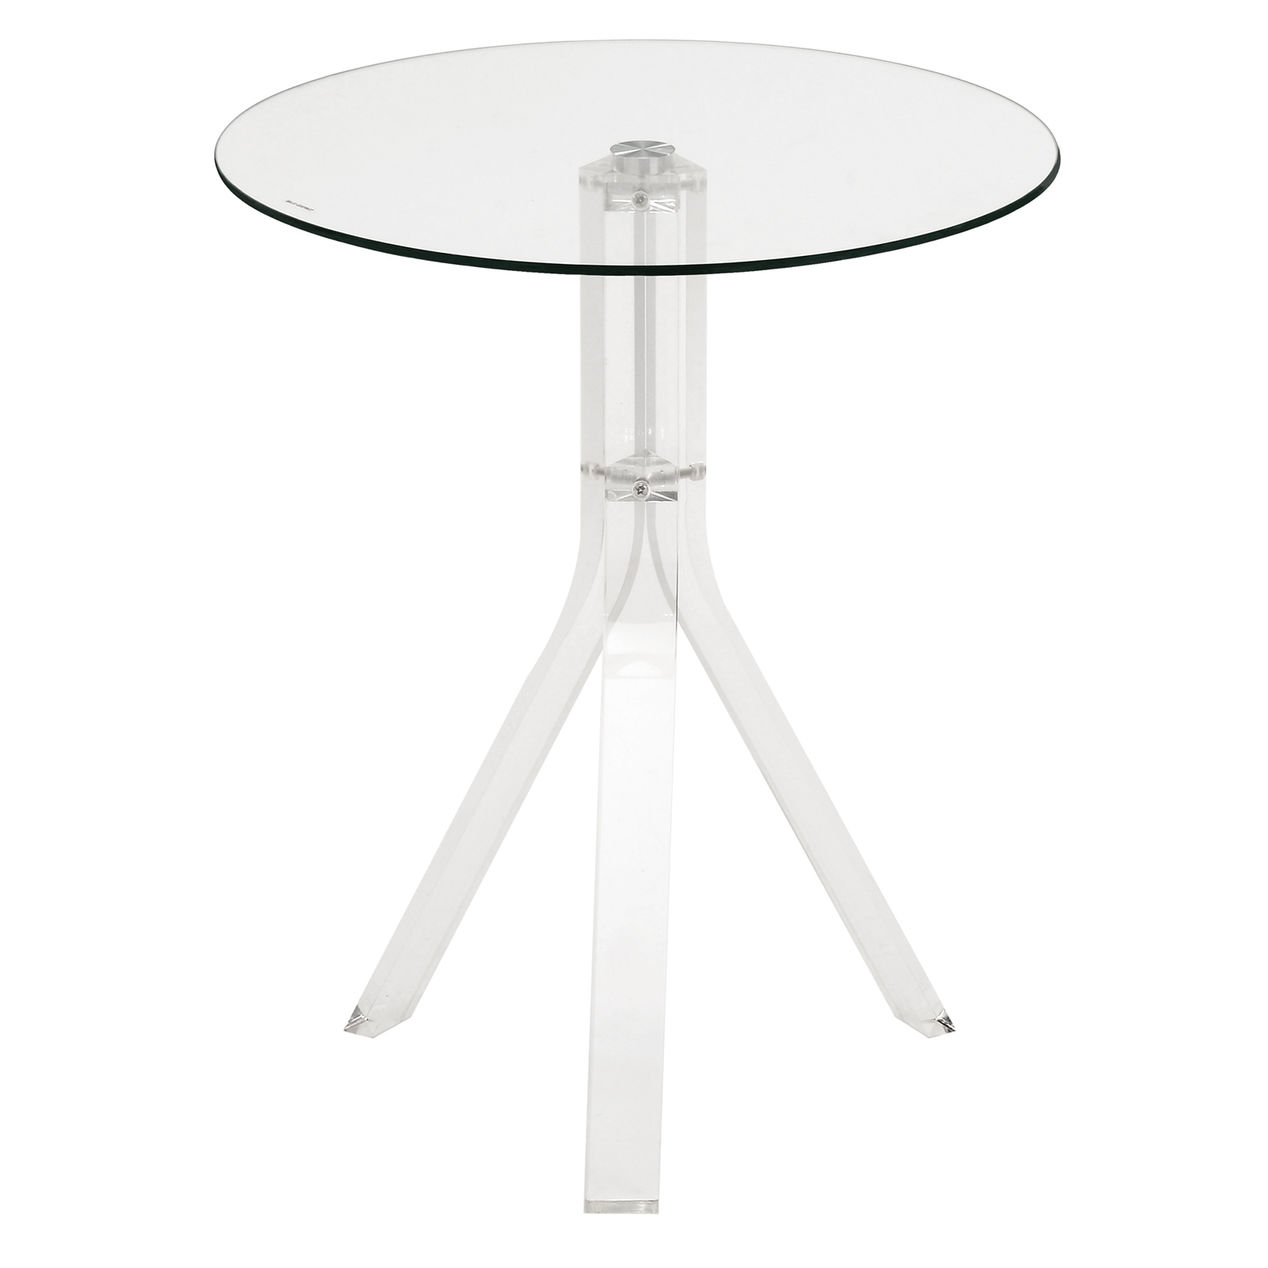 acrylic round accent table home foyer furniture pieces lucite roberts aluminum patio bell side kids bedroom sets ikea storage baskets antique victorian coffee metal counter height